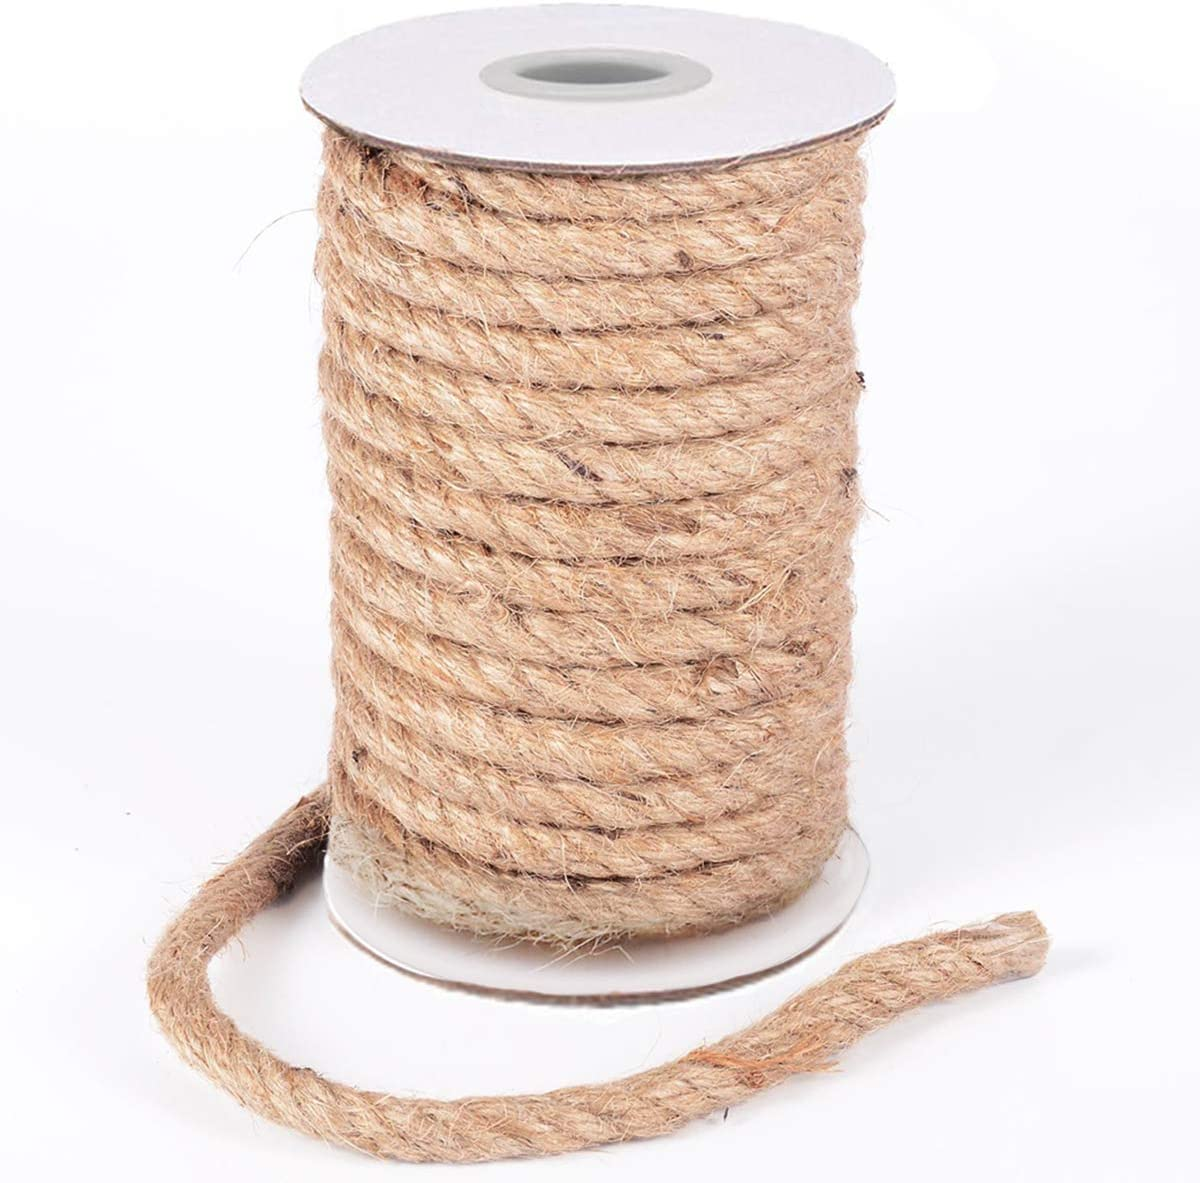 HOMYHOME Jute Rope 10MM Natural Jute Burlap Twine String Hessian Rope Cord Craft for Industrial, Packaging, Arts,Crafts, Gifts, Decoration, Bundling, Gardening and Home 32Feet